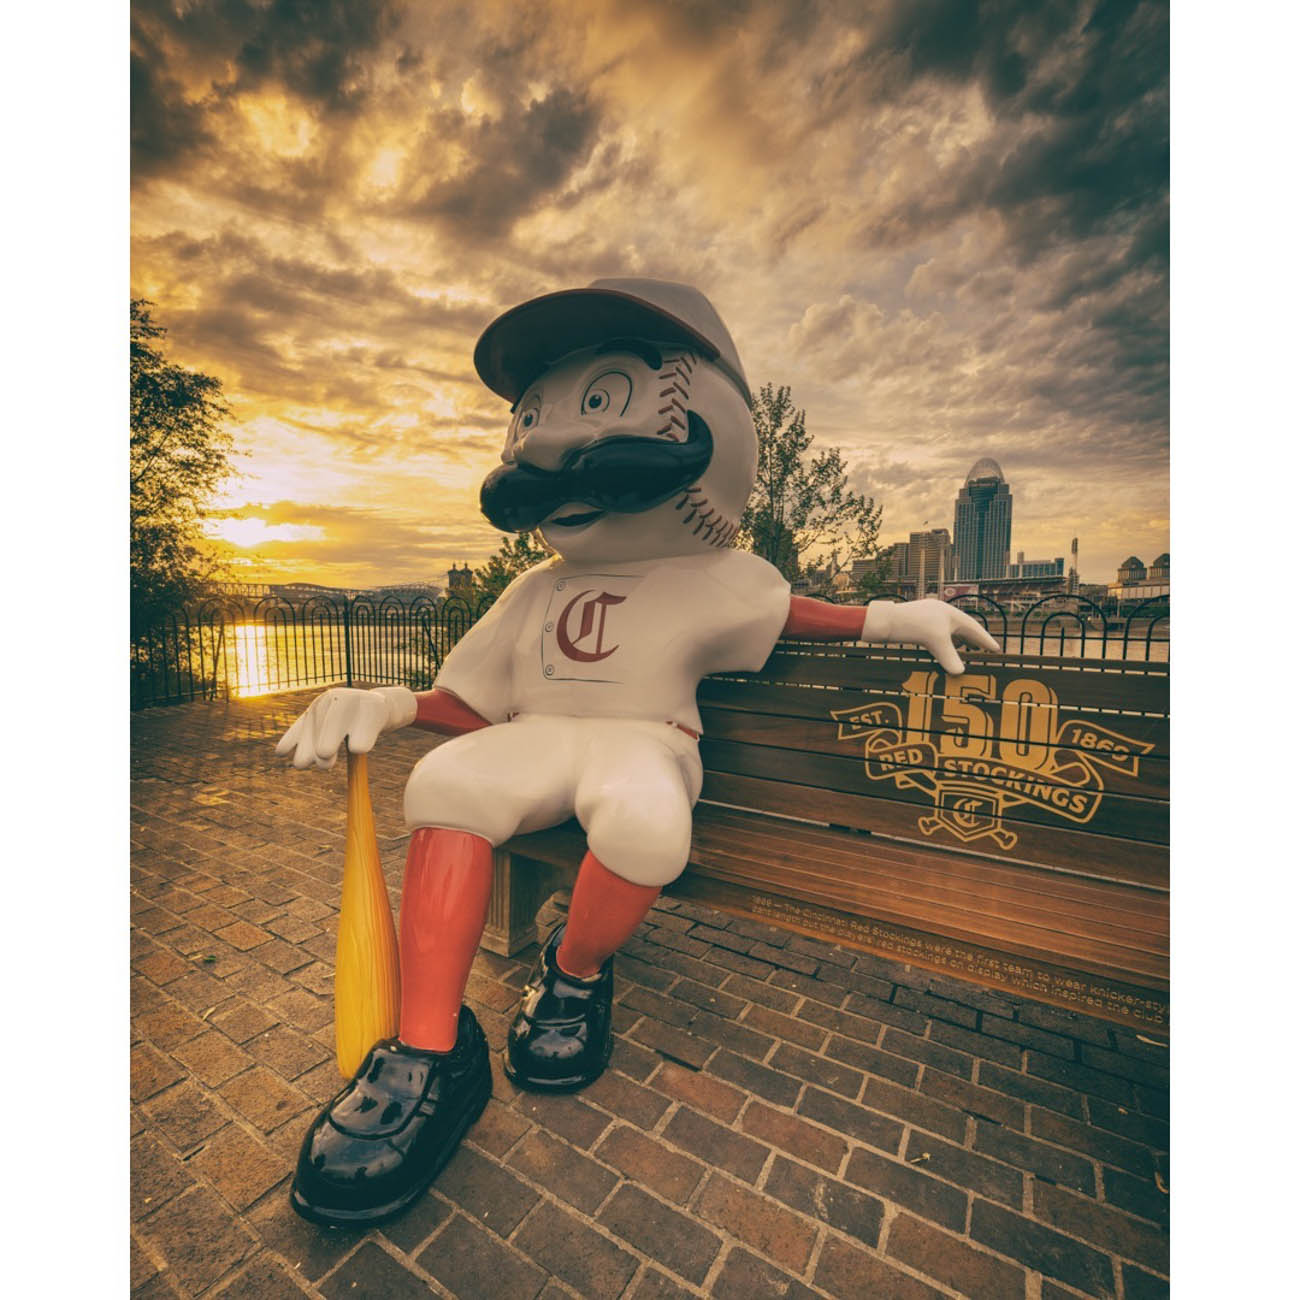 To celebrate the Reds' 150th Anniversary, 24 benches featuring Mr. Redlegs sculptures have been added to various spots around the area, as well as out of town locations including Dayton, Loveland, and Louisville, for the perfect Reds photo op. The mascot sports different uniforms from throughout the team's history at each of the benches. The Reds have been wearing these same throwback uniforms during their 2019 season. / Location:{ }Historic Licking Riverside Drive in Covington / Uniform: 1869 / Image courtesy of Instagram user @jonreynoldsphoto    // Published: 5.14.19